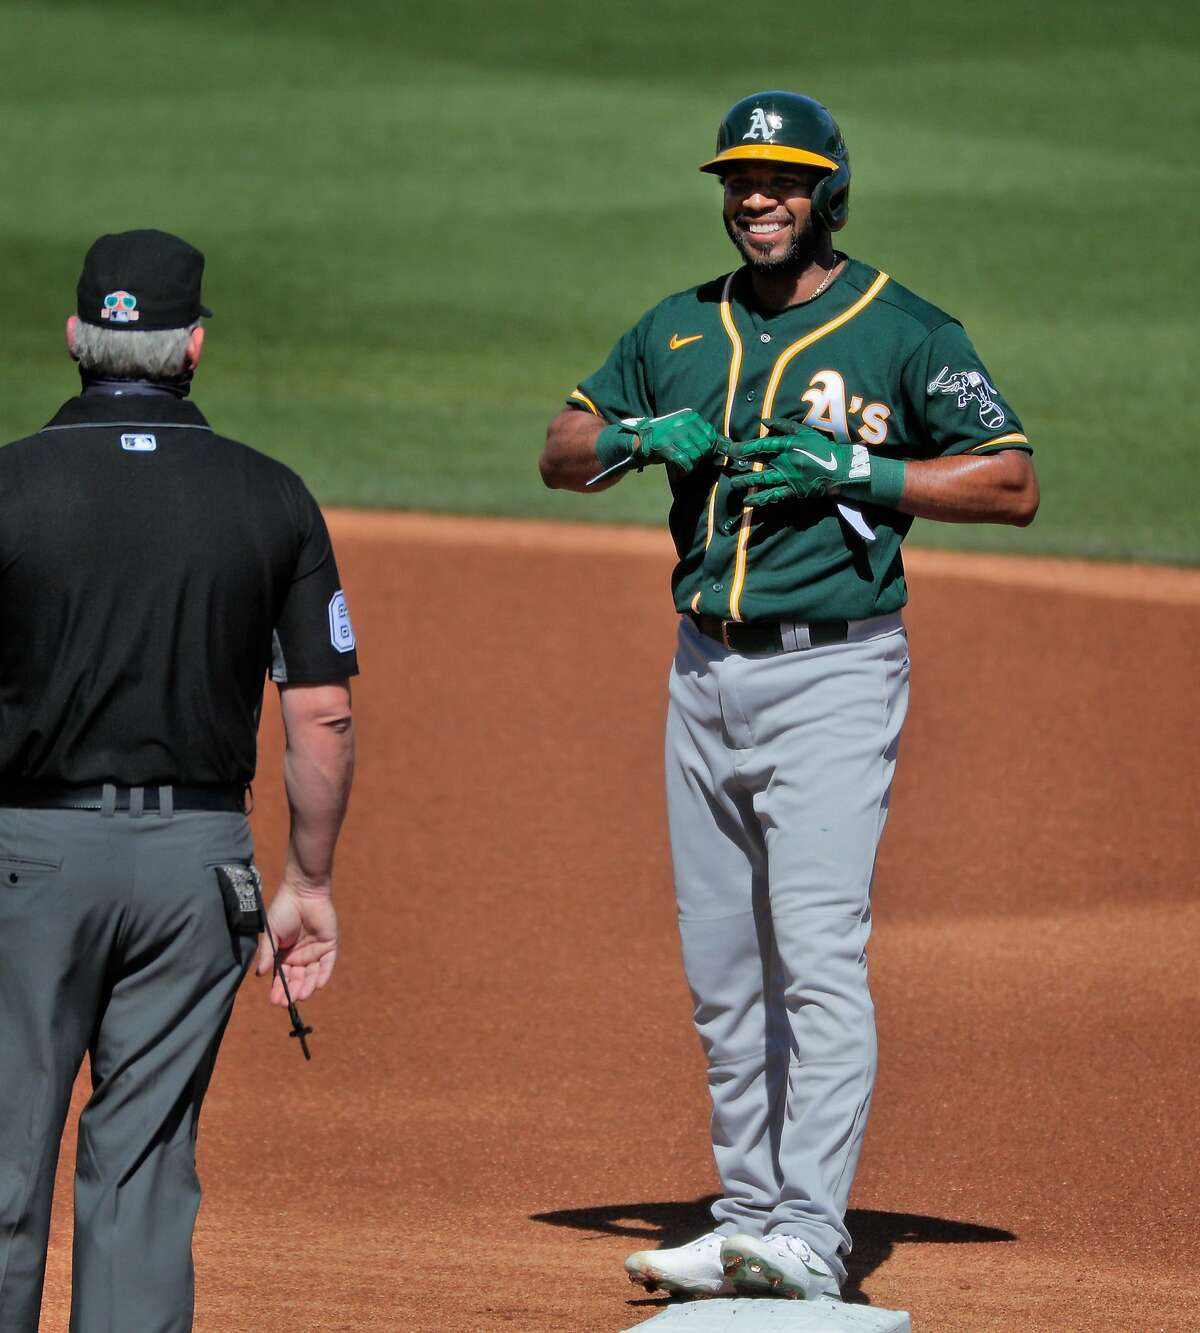 Elvis Andrus (17) smiles at second base umpire Jim Wolf in the first inning as the Oakland Athletics played the Colorado Rockies at Salt River Fields at Talking Stick in Scottsdale, Ariz., on Wednesday, March 3, 2021.